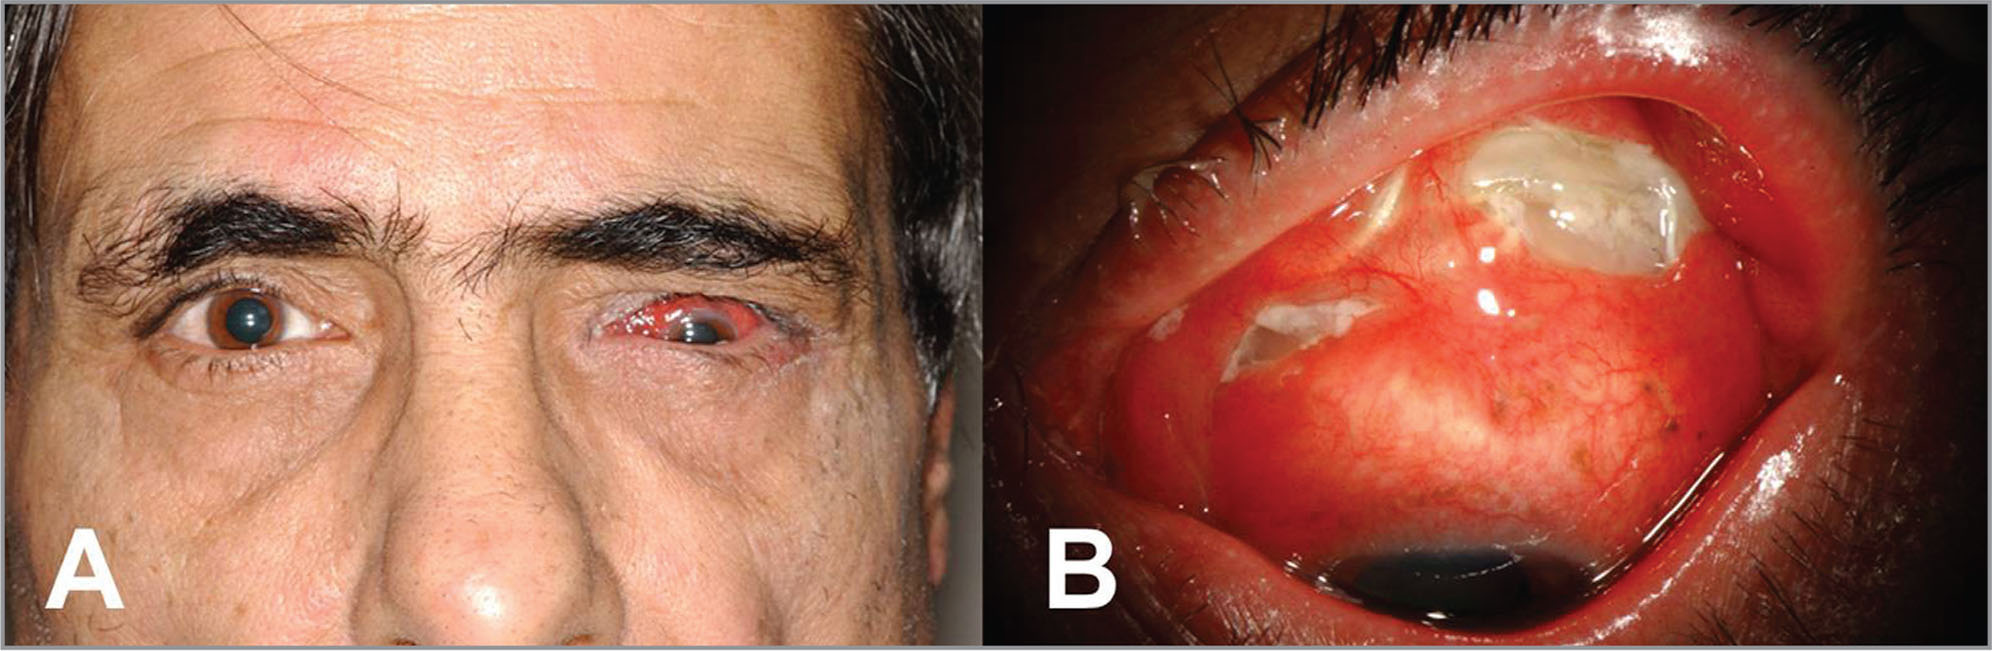 (A) Patient with left hypotropia. (B) Exposed scleral buckle with purulent discharge.